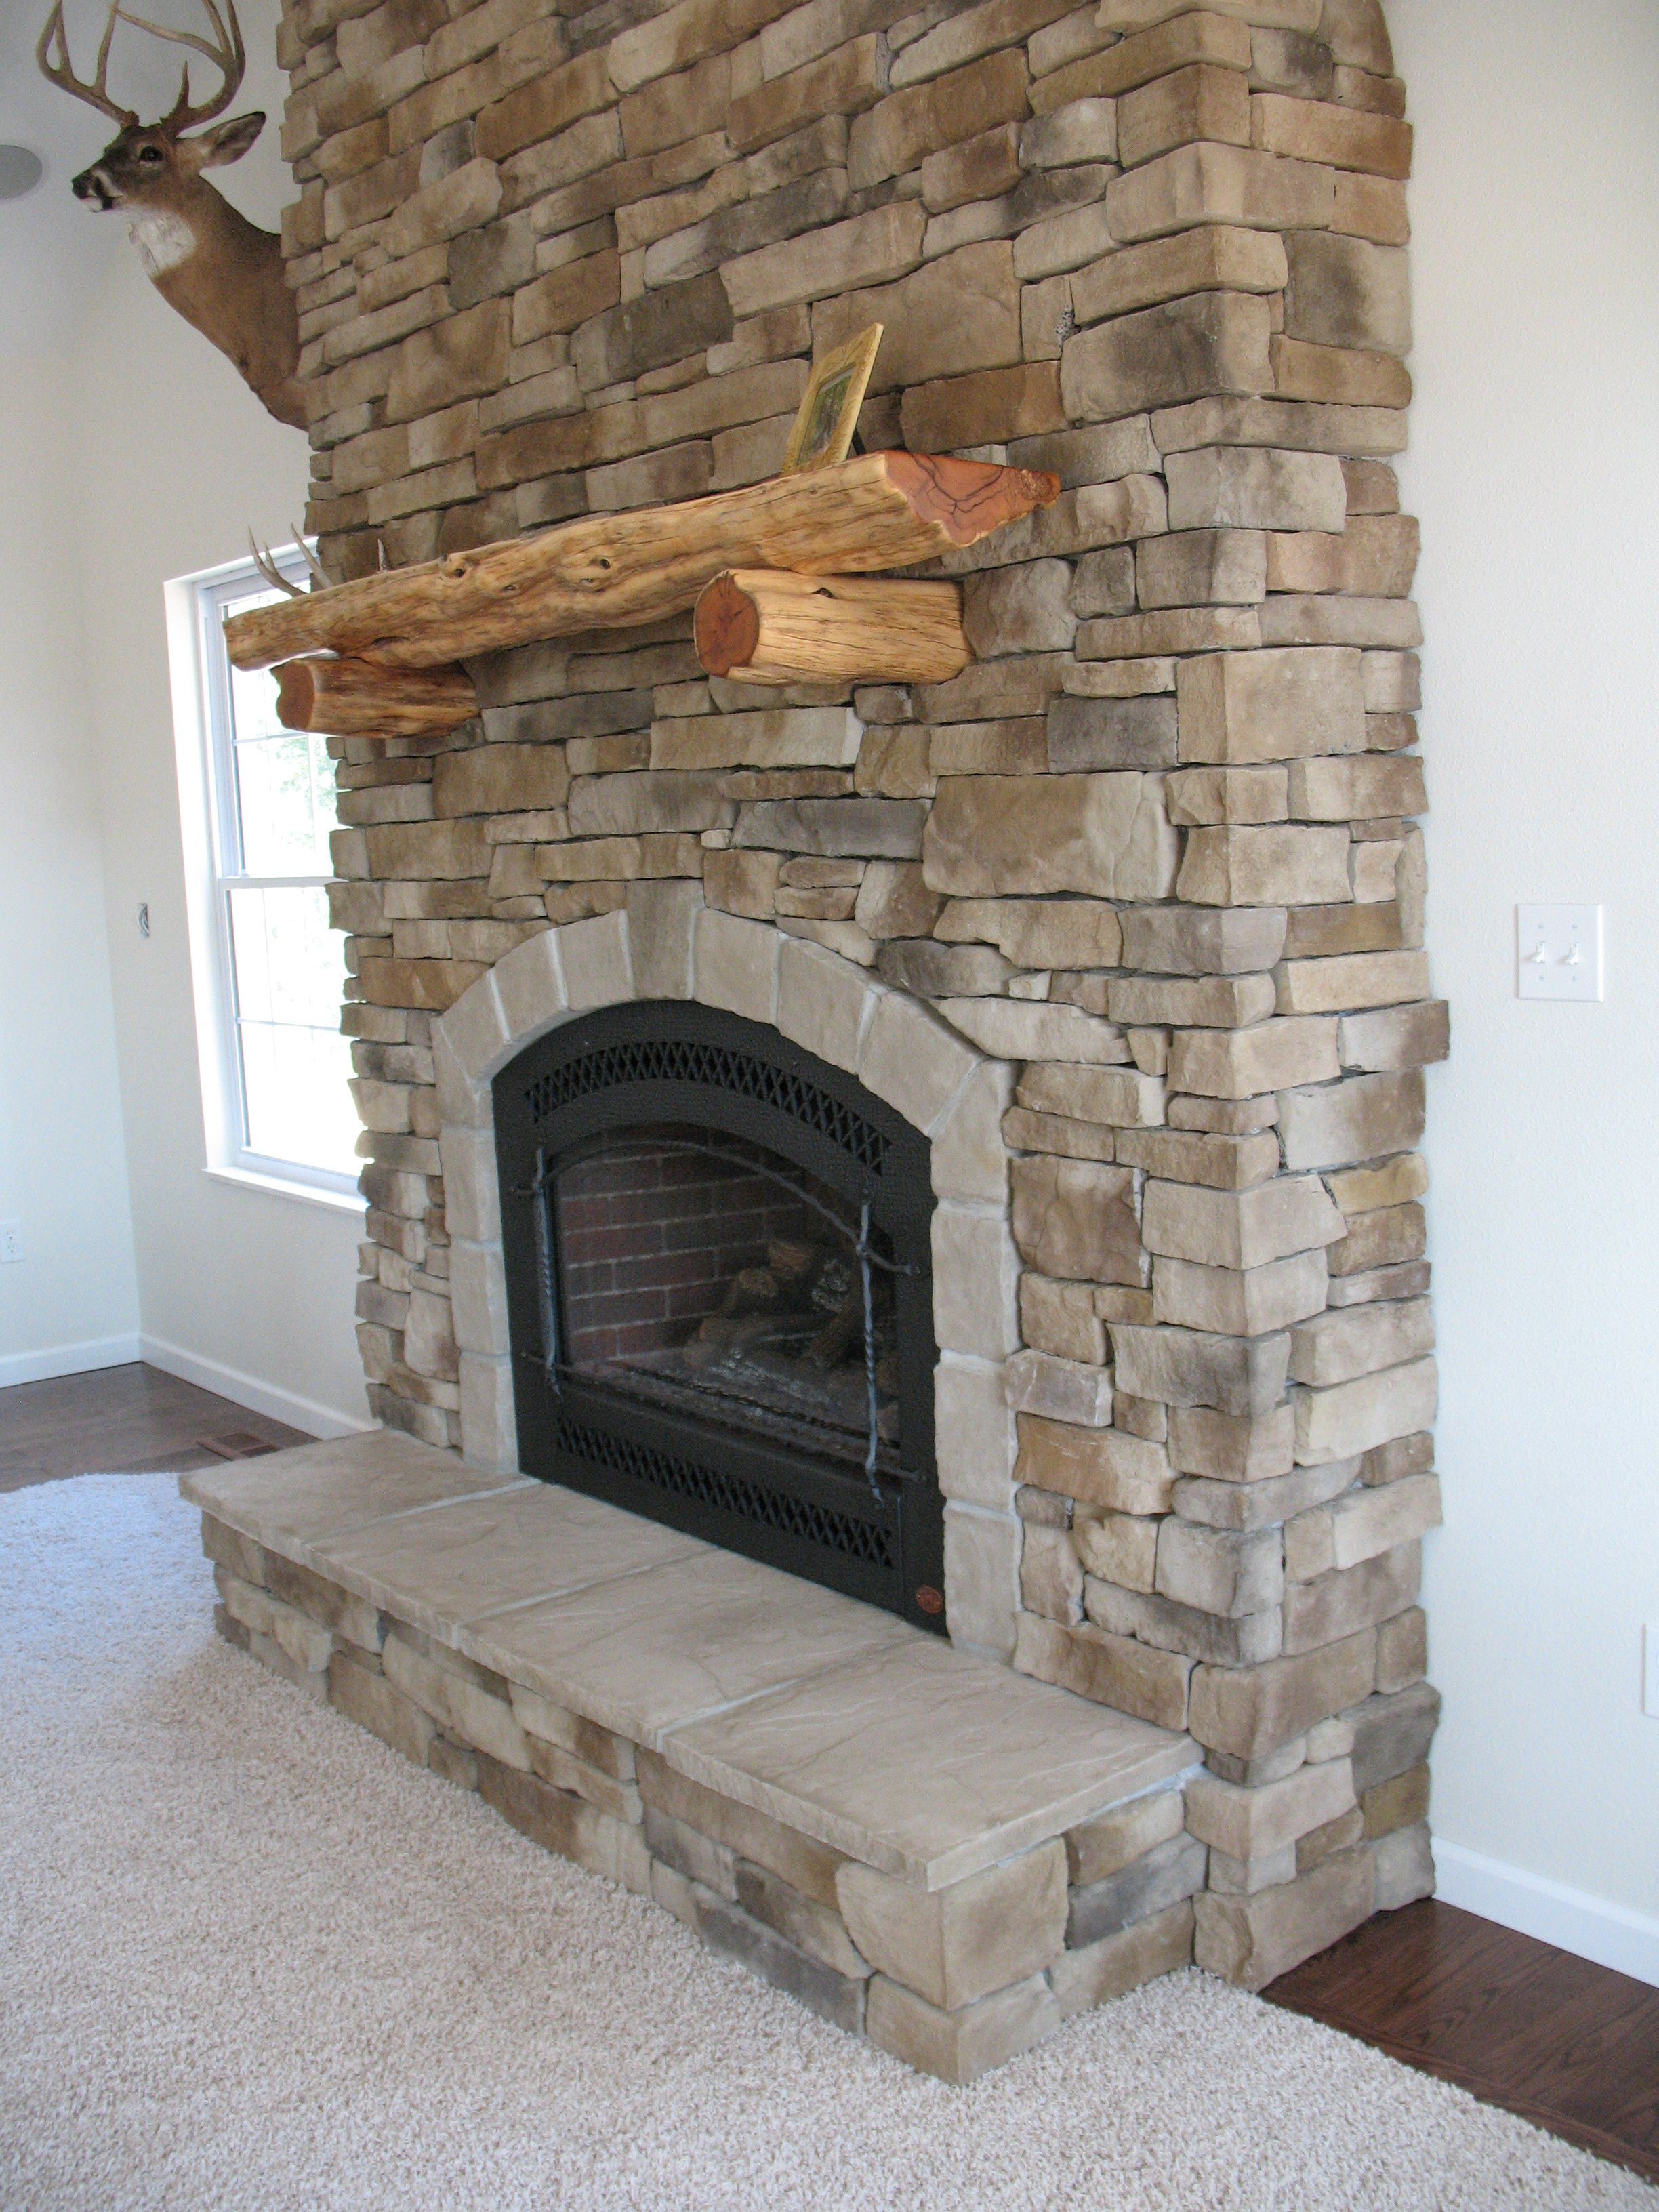 Stones Fireplaces google image result for http://www.atozmasonry/pics/albums